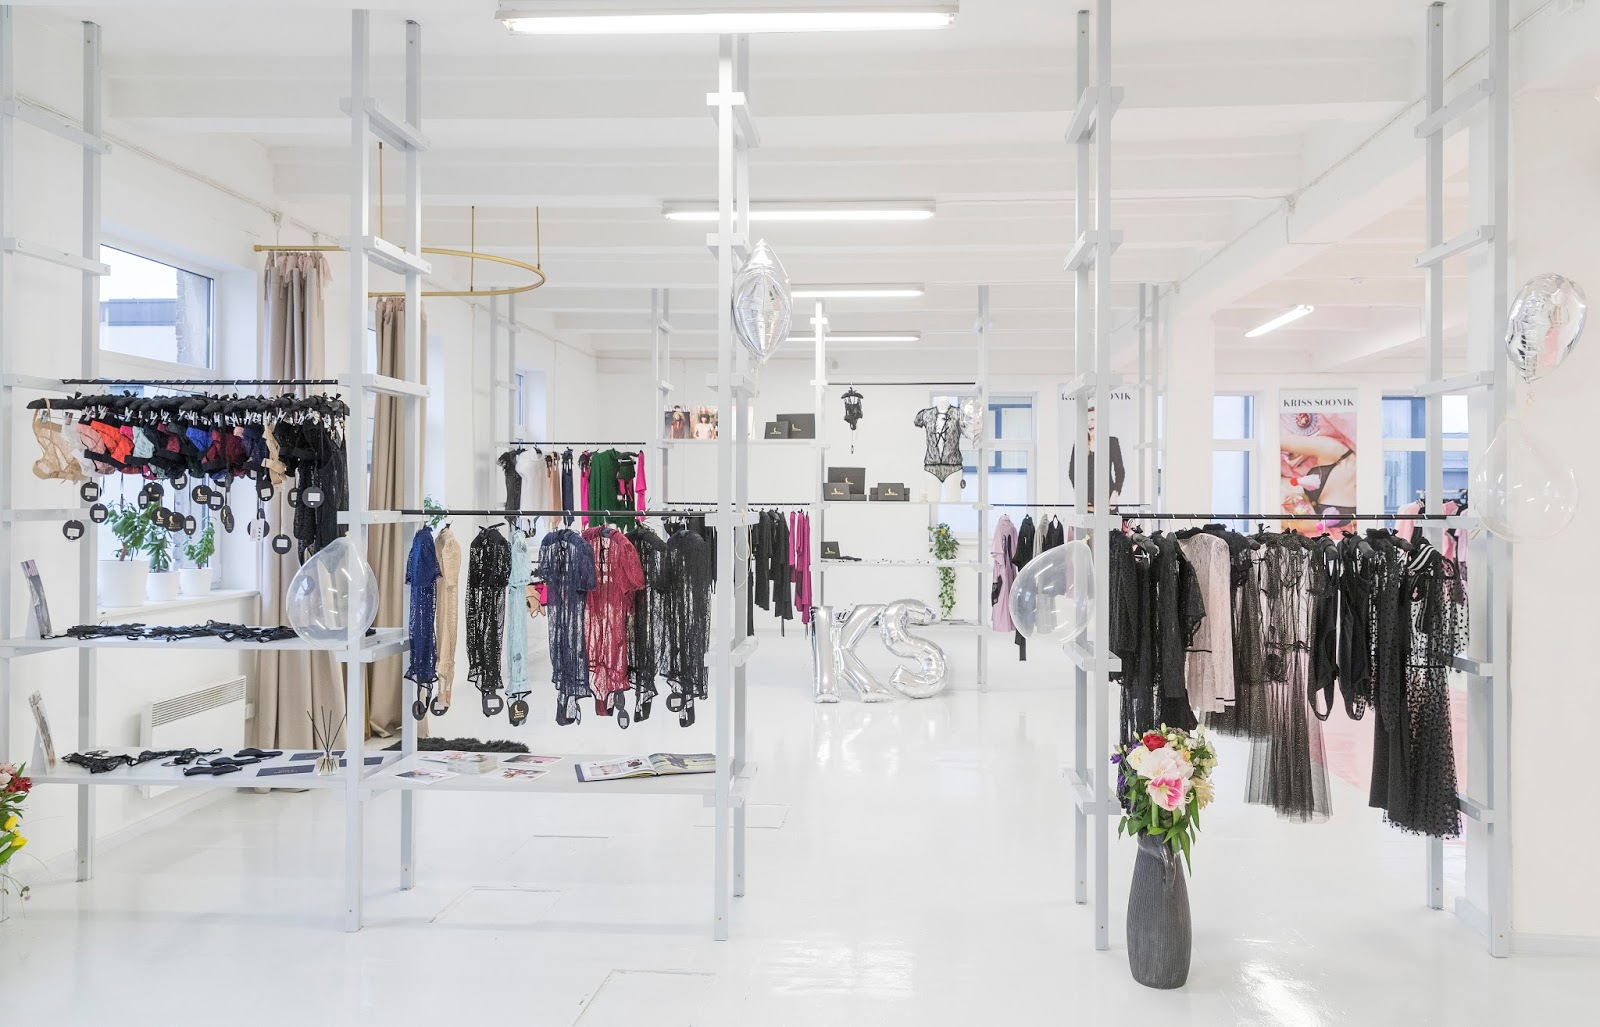 KRISS SOONIK SHOWROOM TALLINNAS